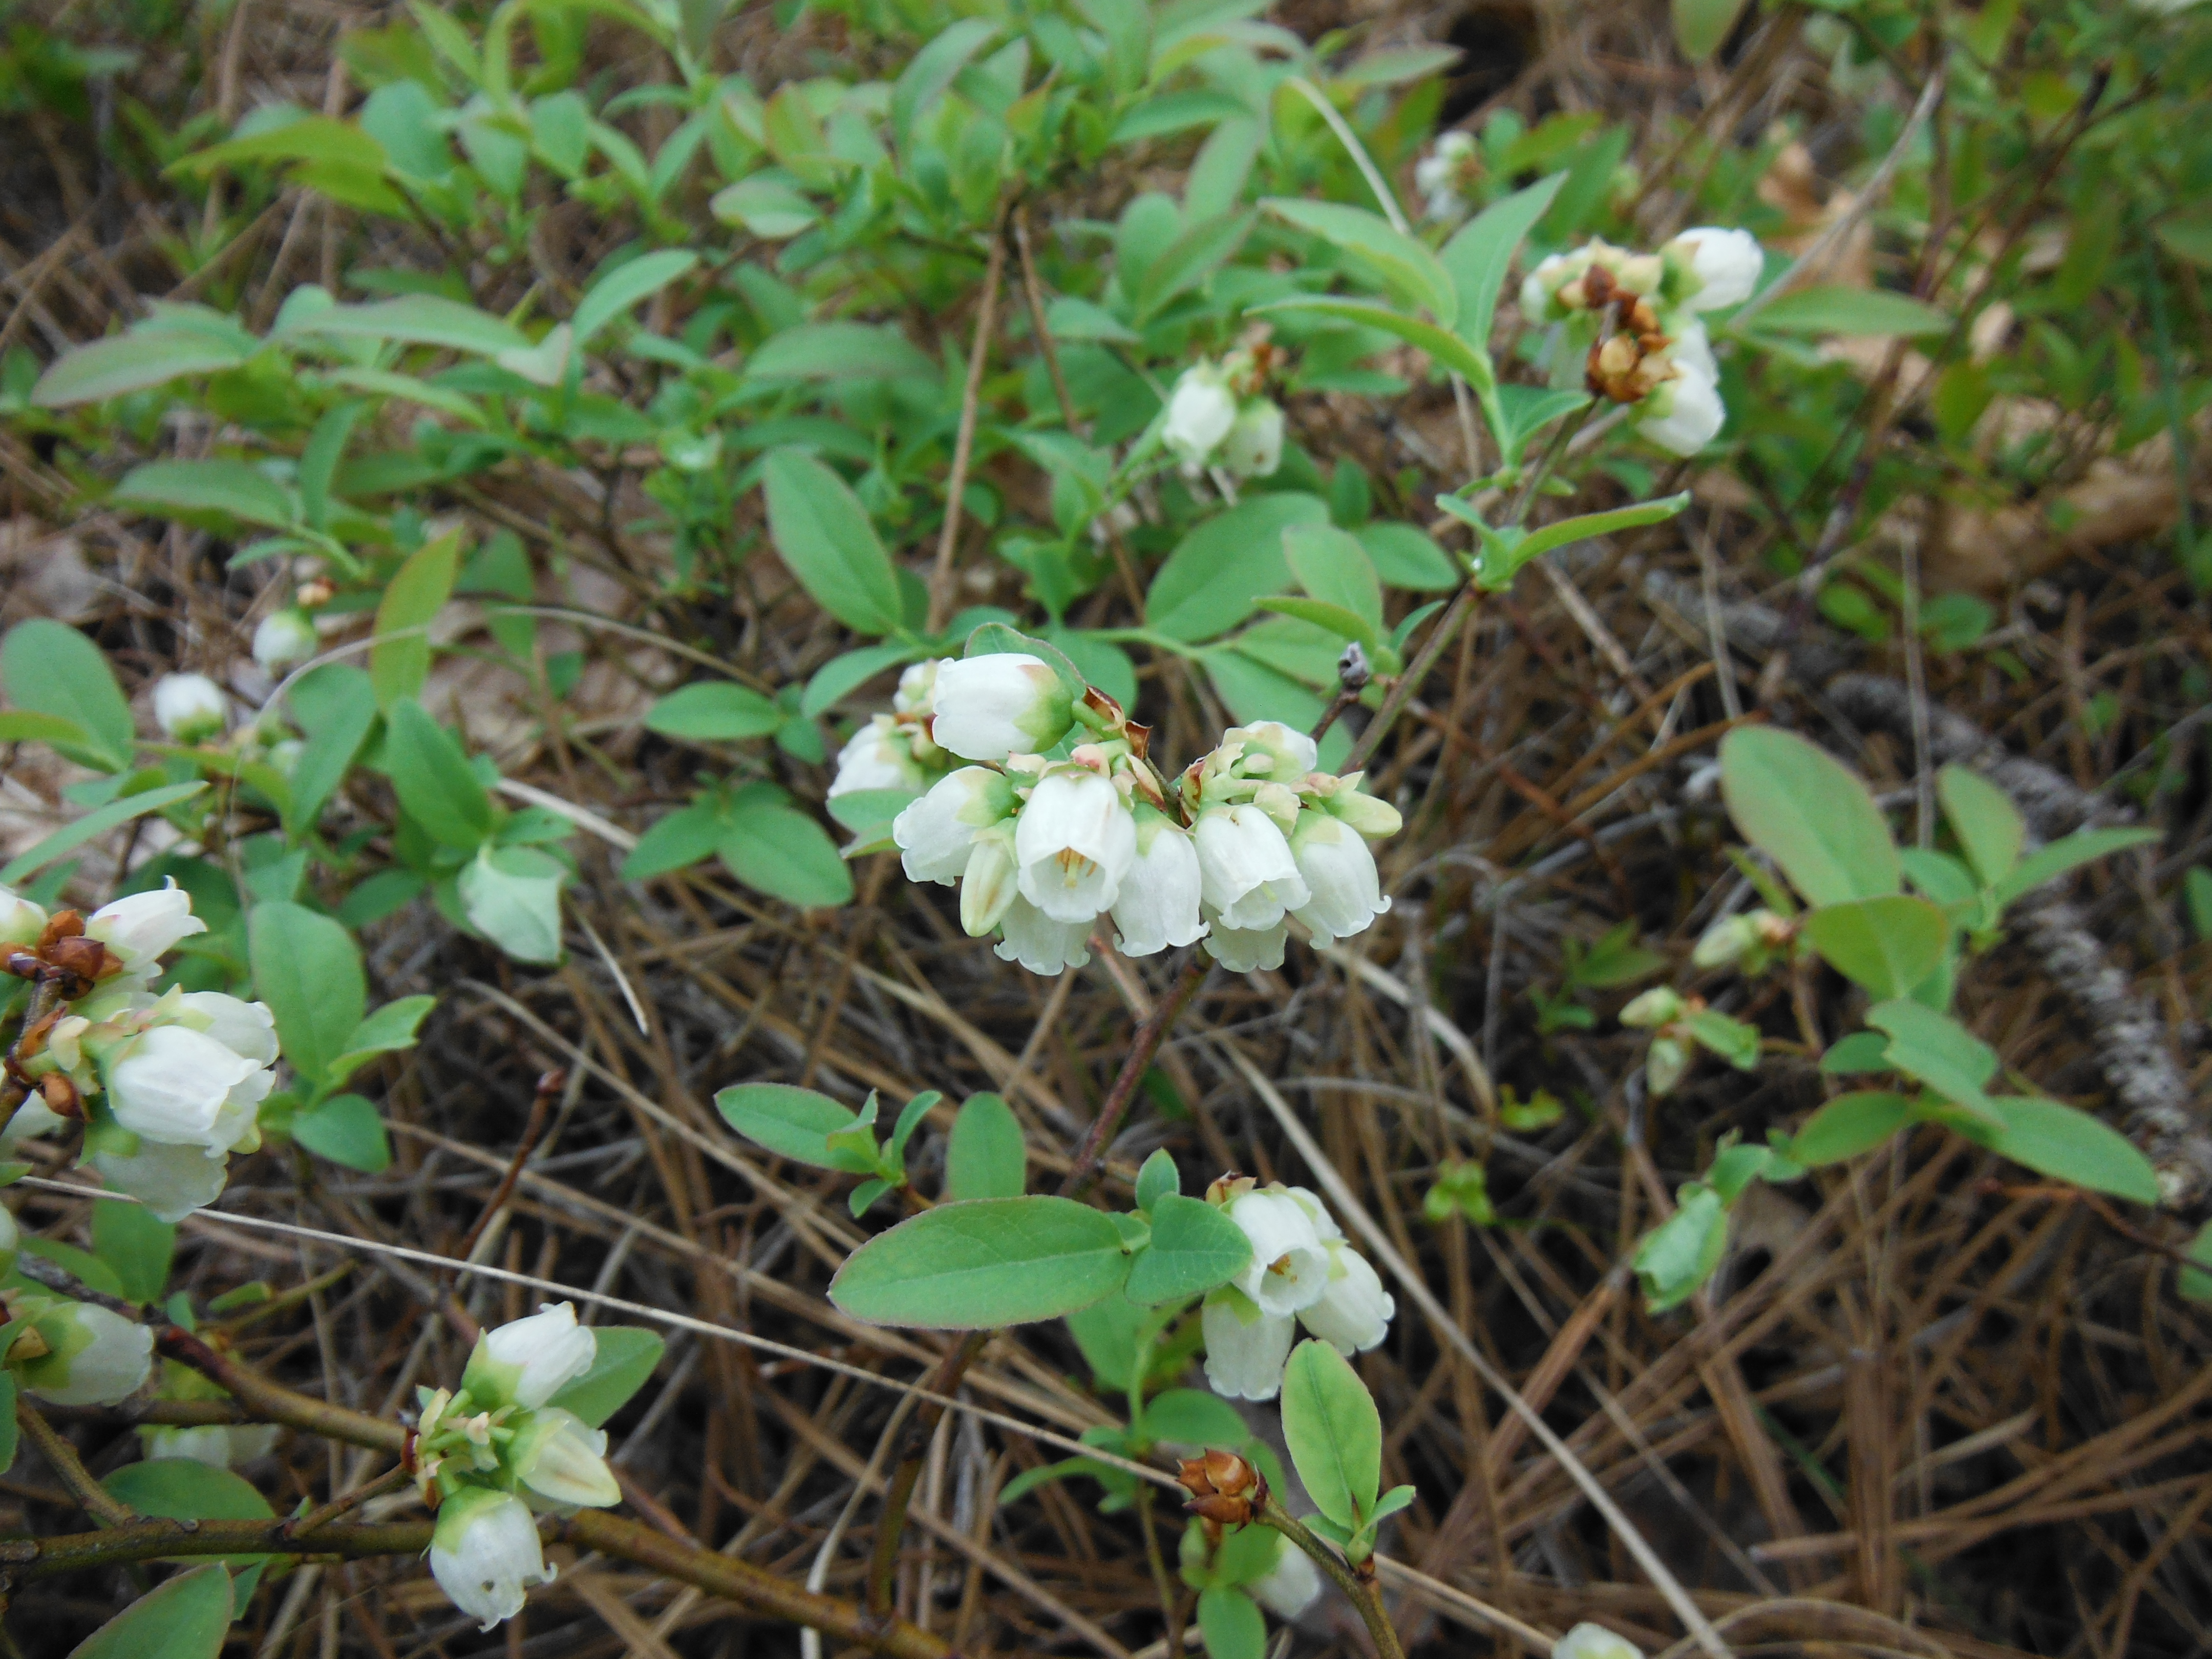 Blueberries flowering nicely - this is a good spot later in summer!